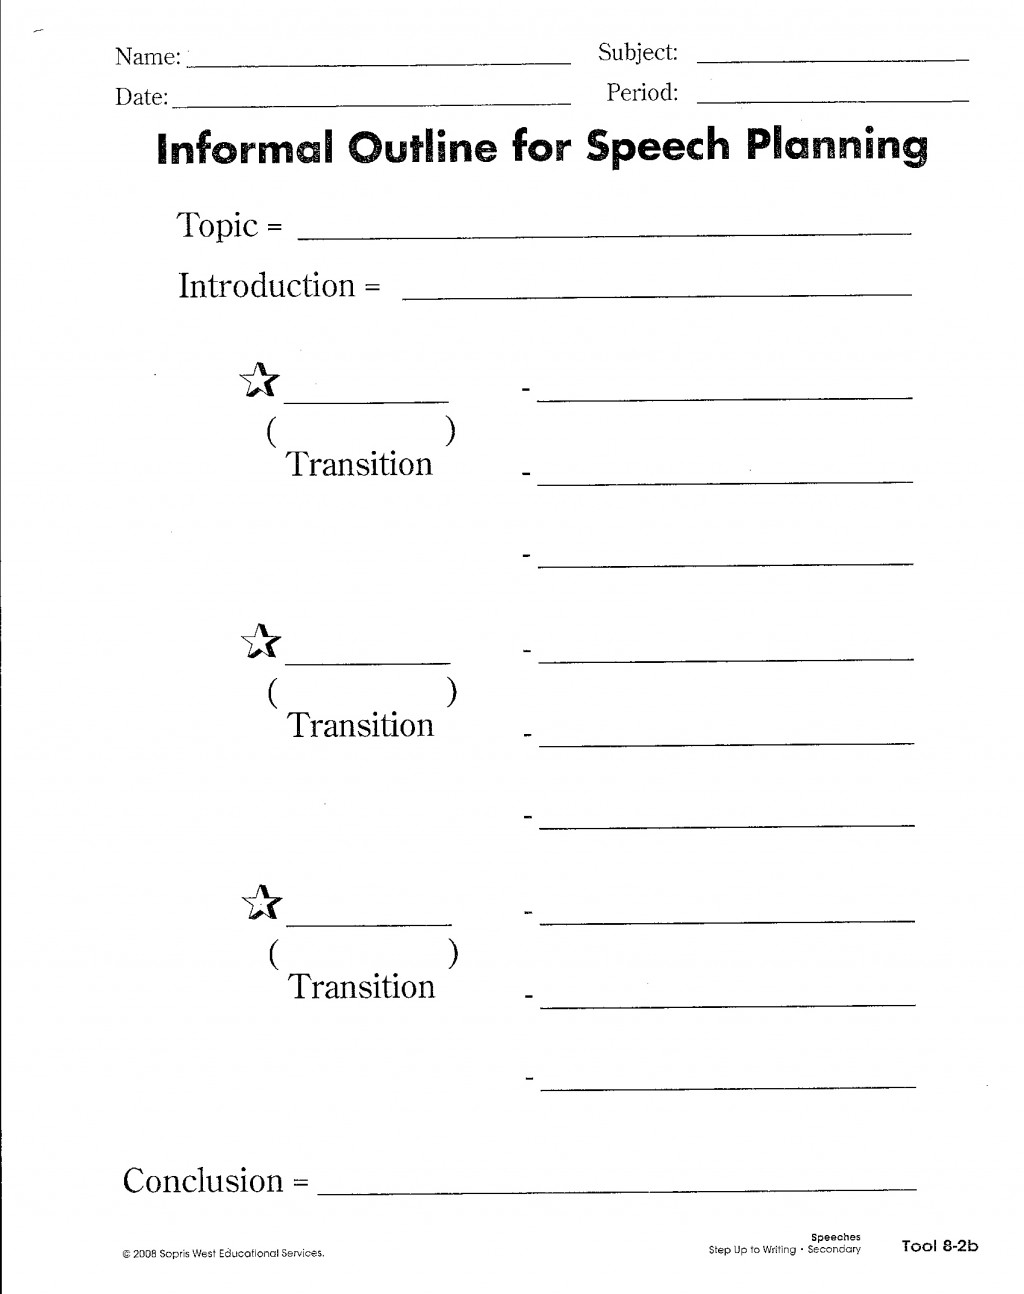 006 Research Paper Suw Planning Your Speech With An Informal Outline 2bwu003d640 How To Make For Rare A Examples Large